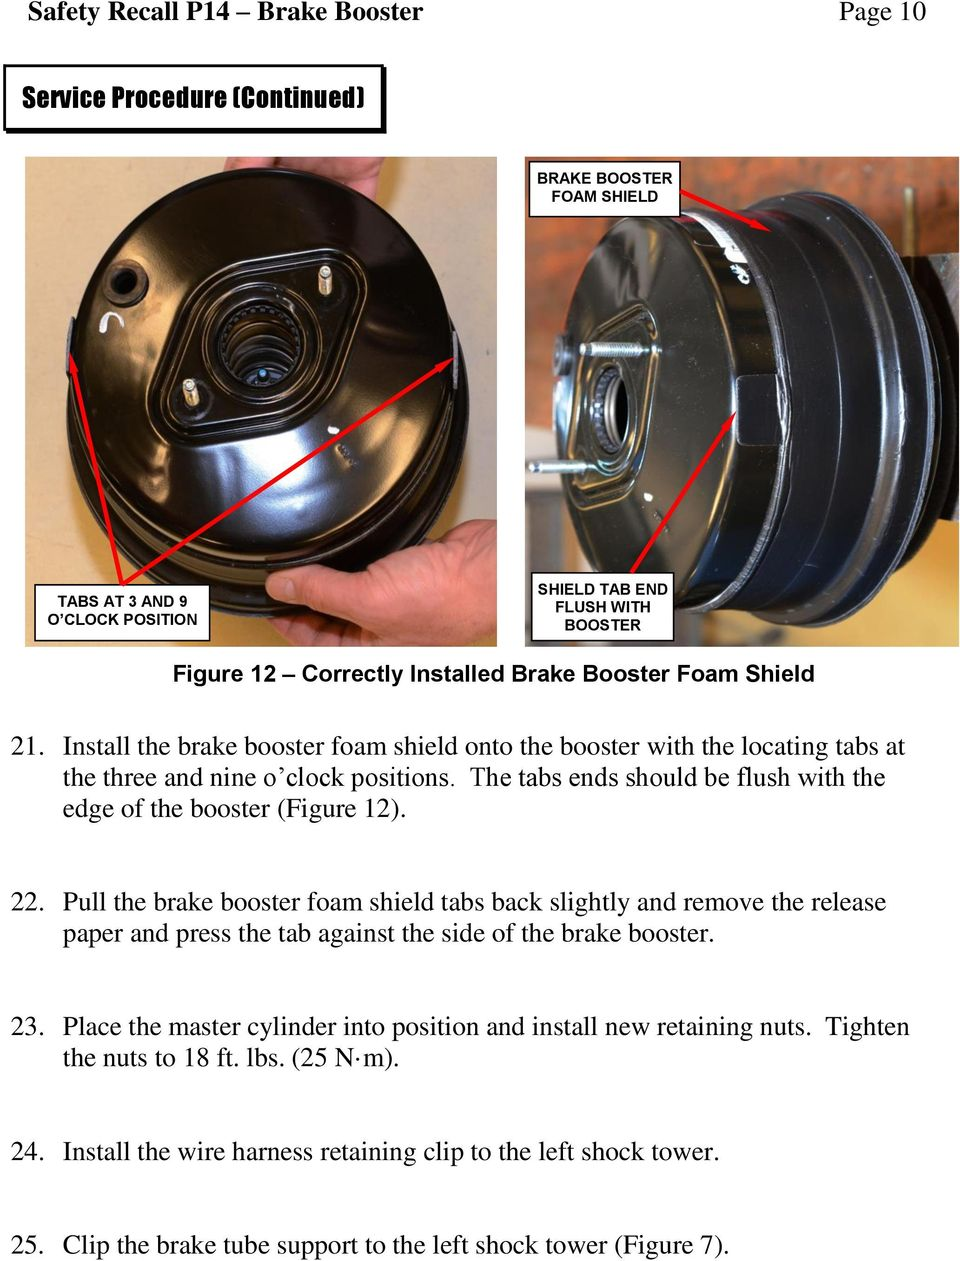 Dealer Service Instructions For Safety Recall P14 Nhtsa 14v 154 98 Durango Brake Switch Wiring Harness Pull The Booster Foam Shield Tabs Back Slightly And Remove Release Paper Press